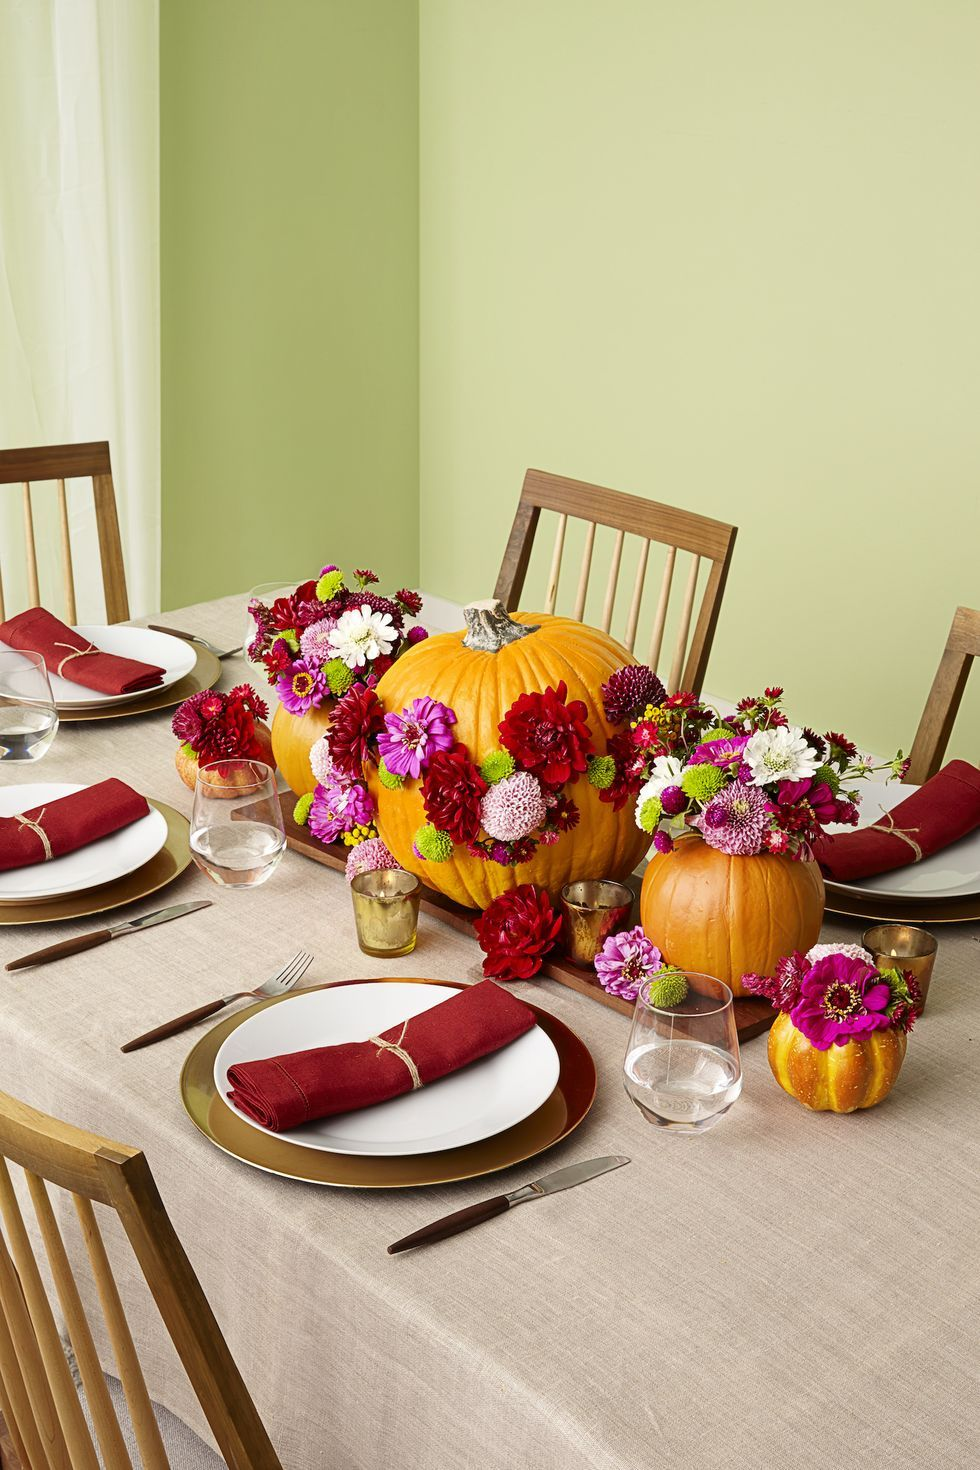 60 Diy Thanksgiving Table Setting Ideas Table Decor And Place Settings For Thanksgiving